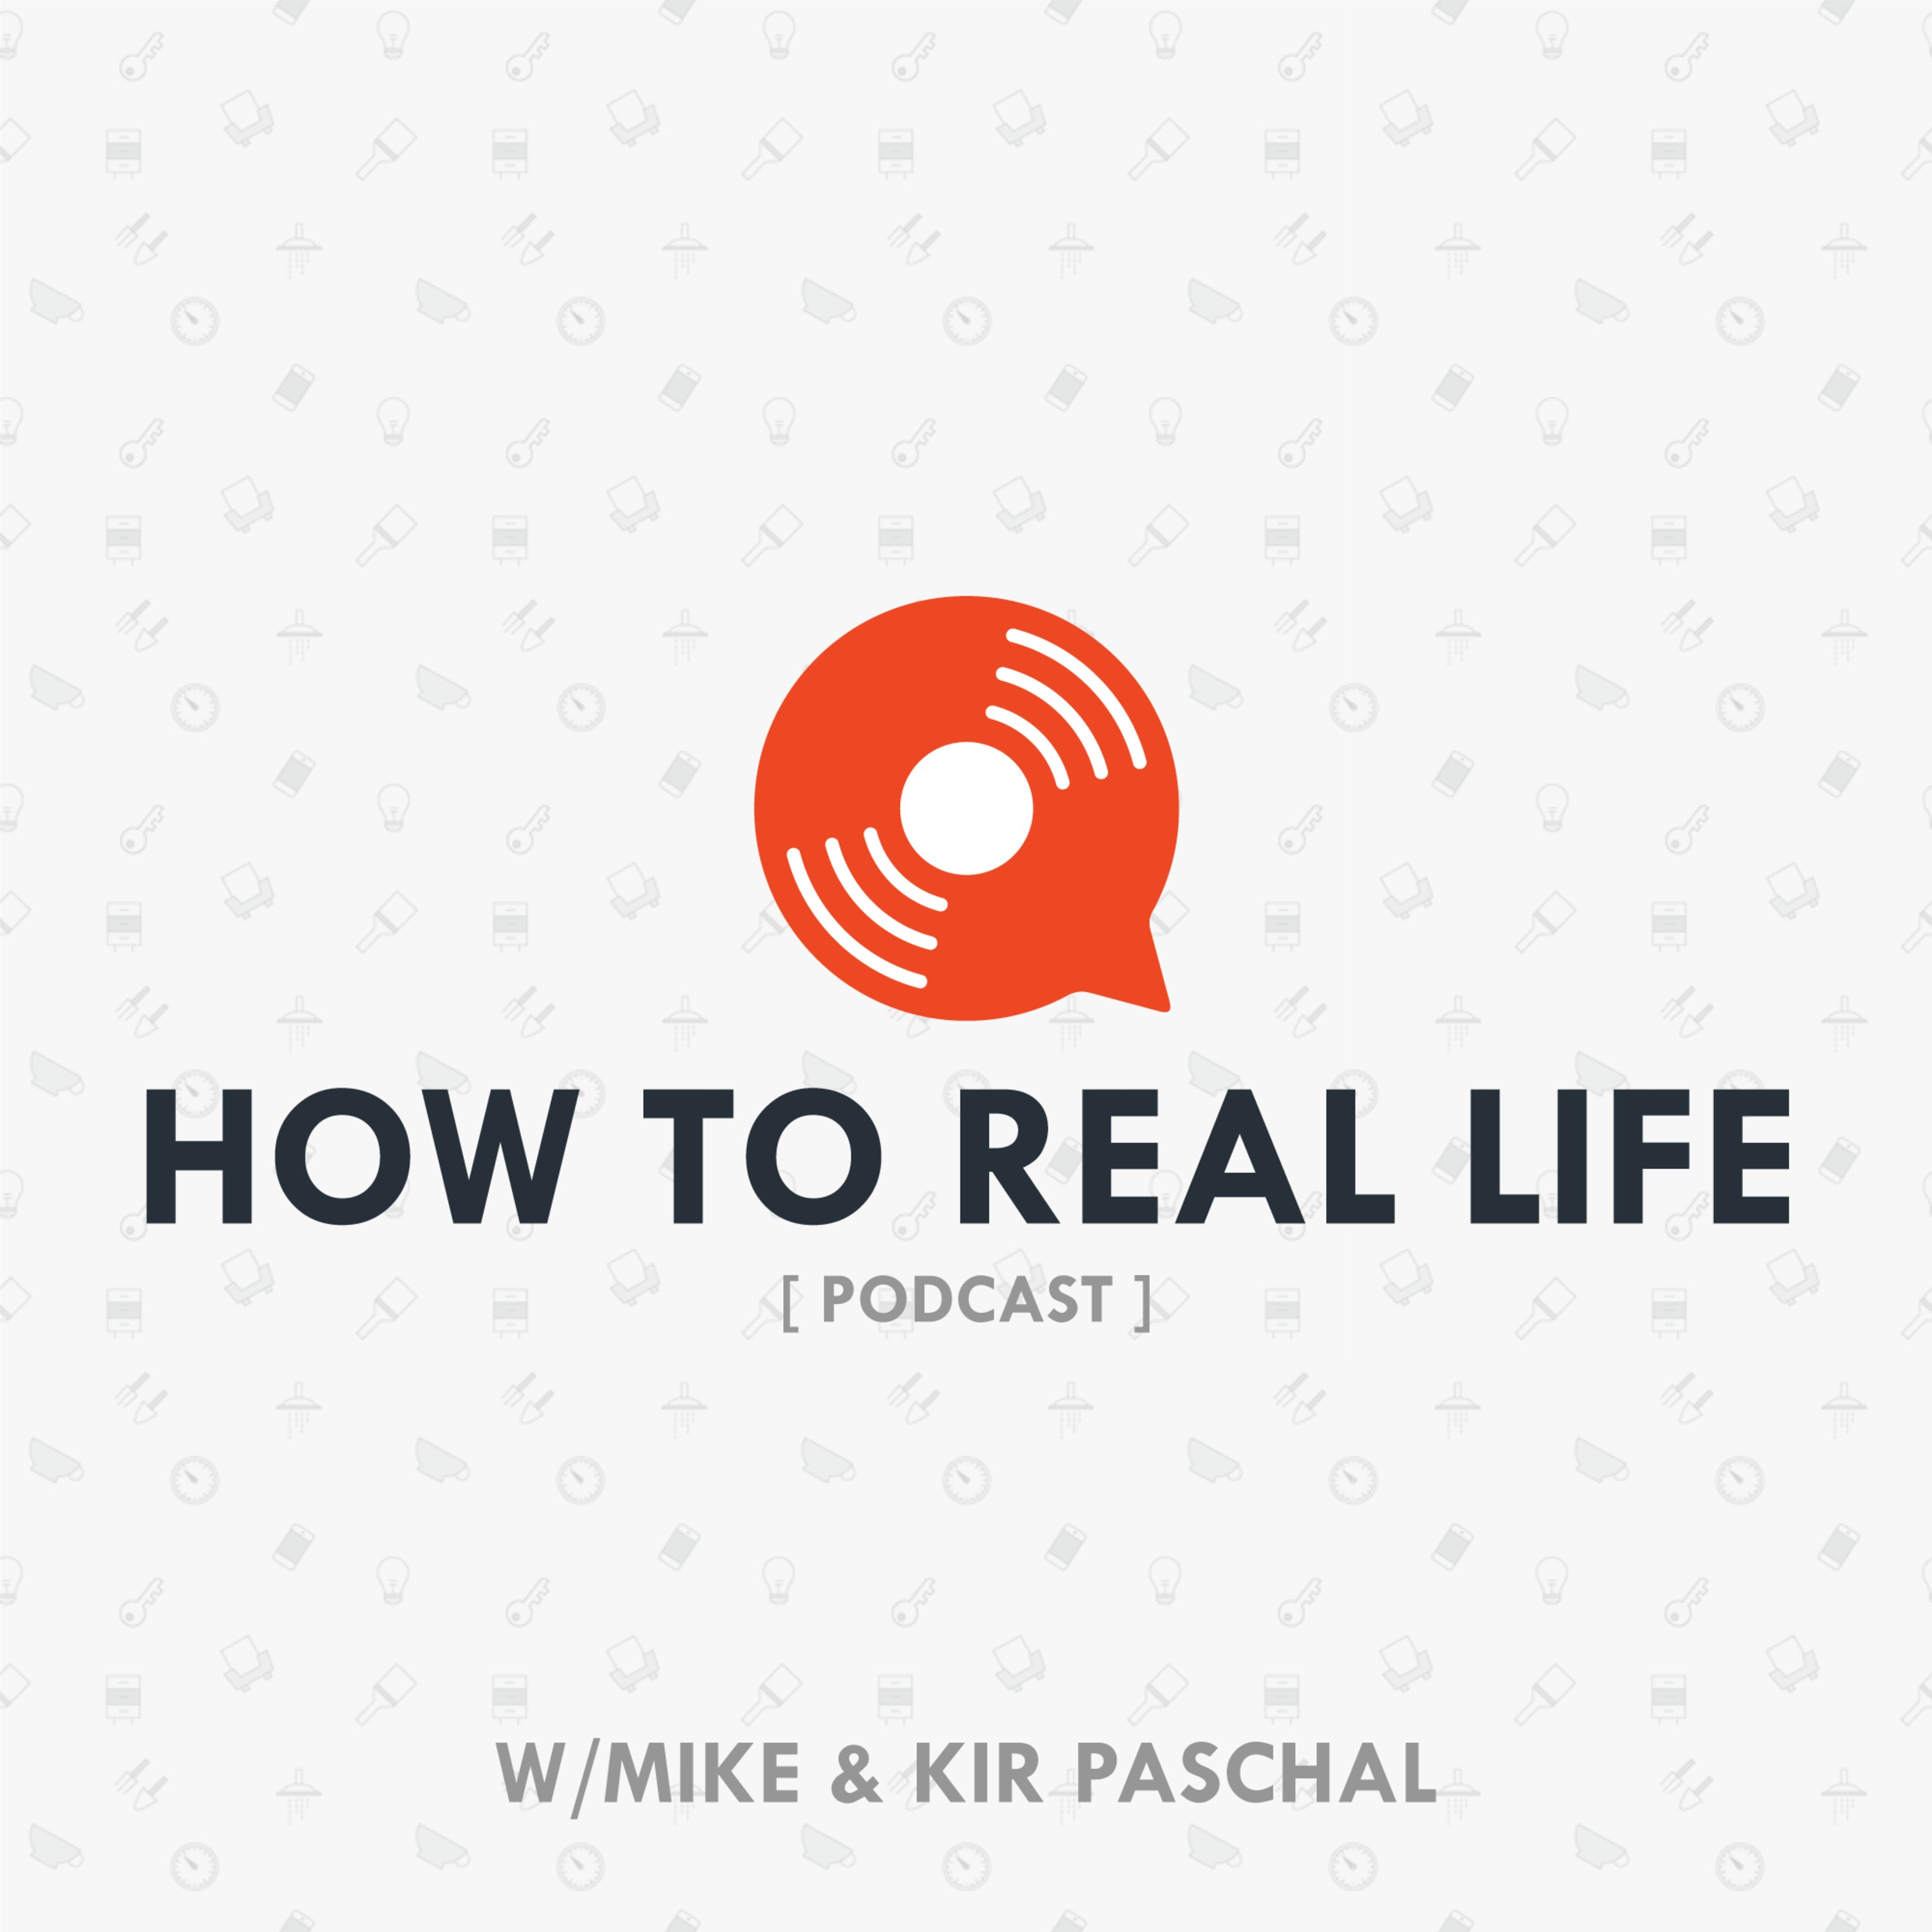 How to Real Life